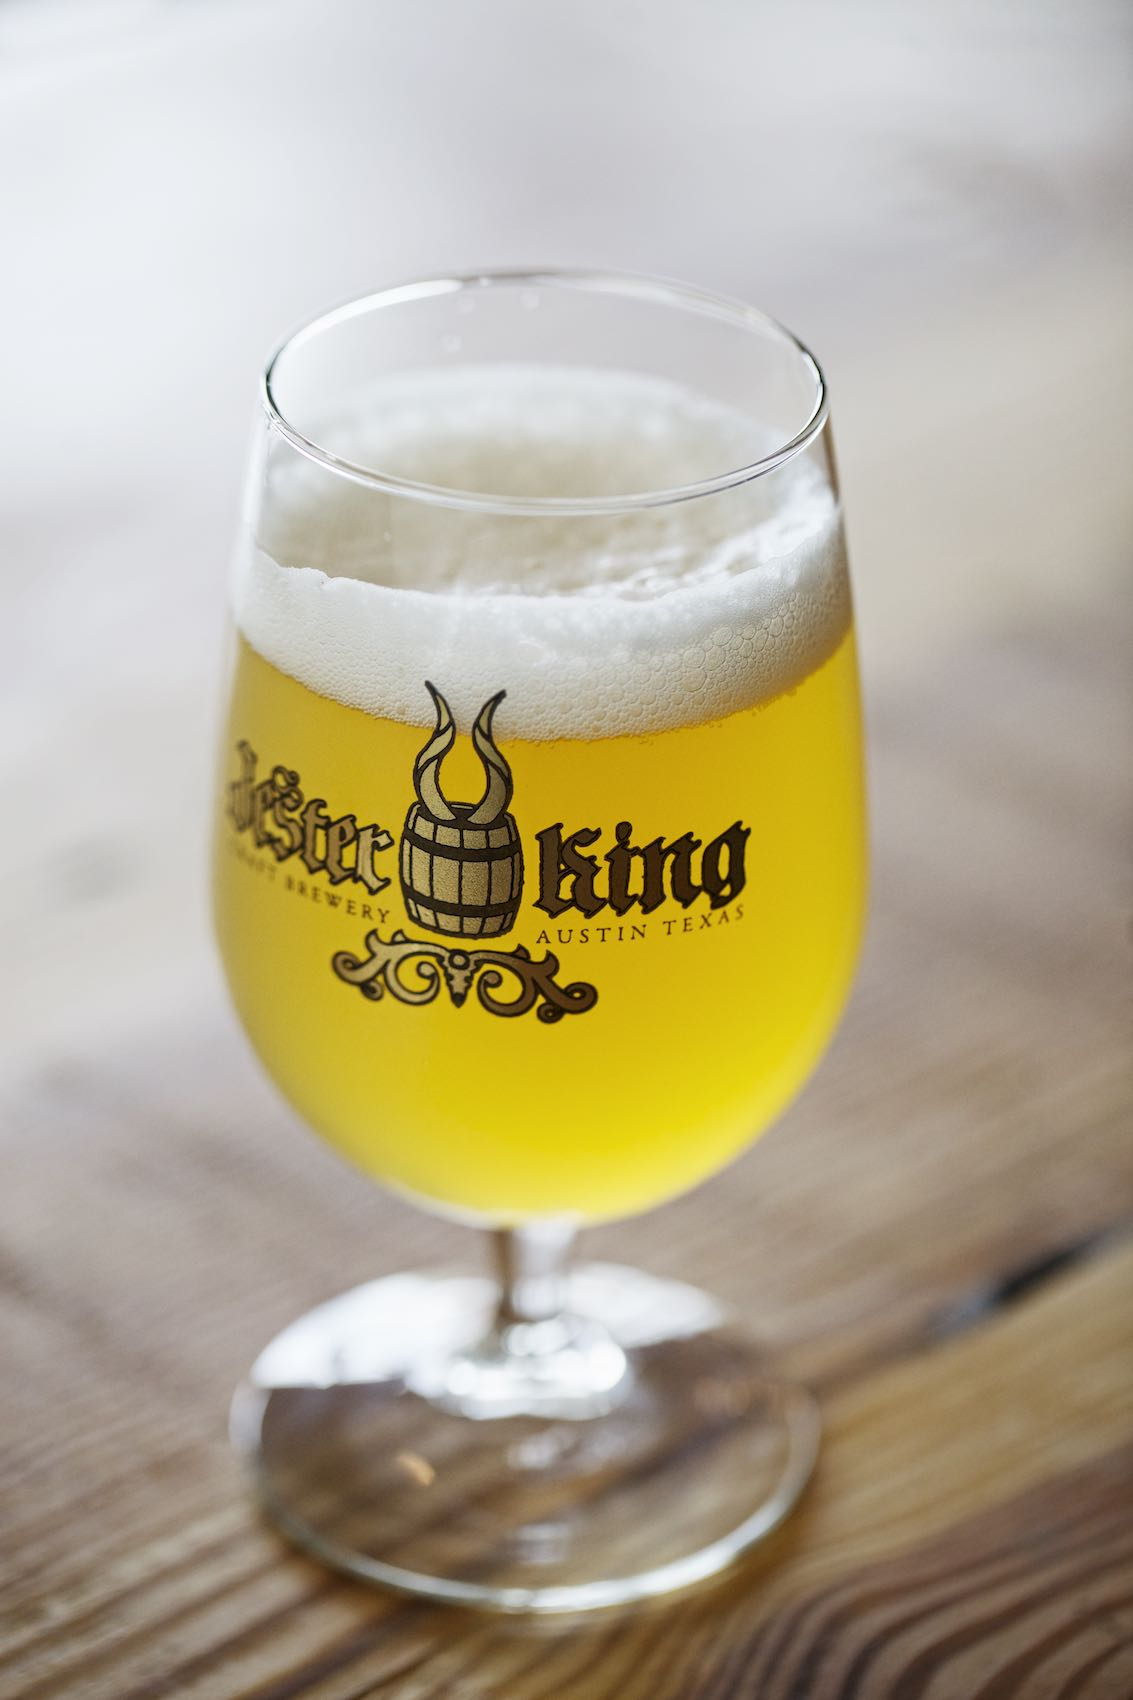 Jody Horton Photography - Jester King beer in a labeled stem glass.